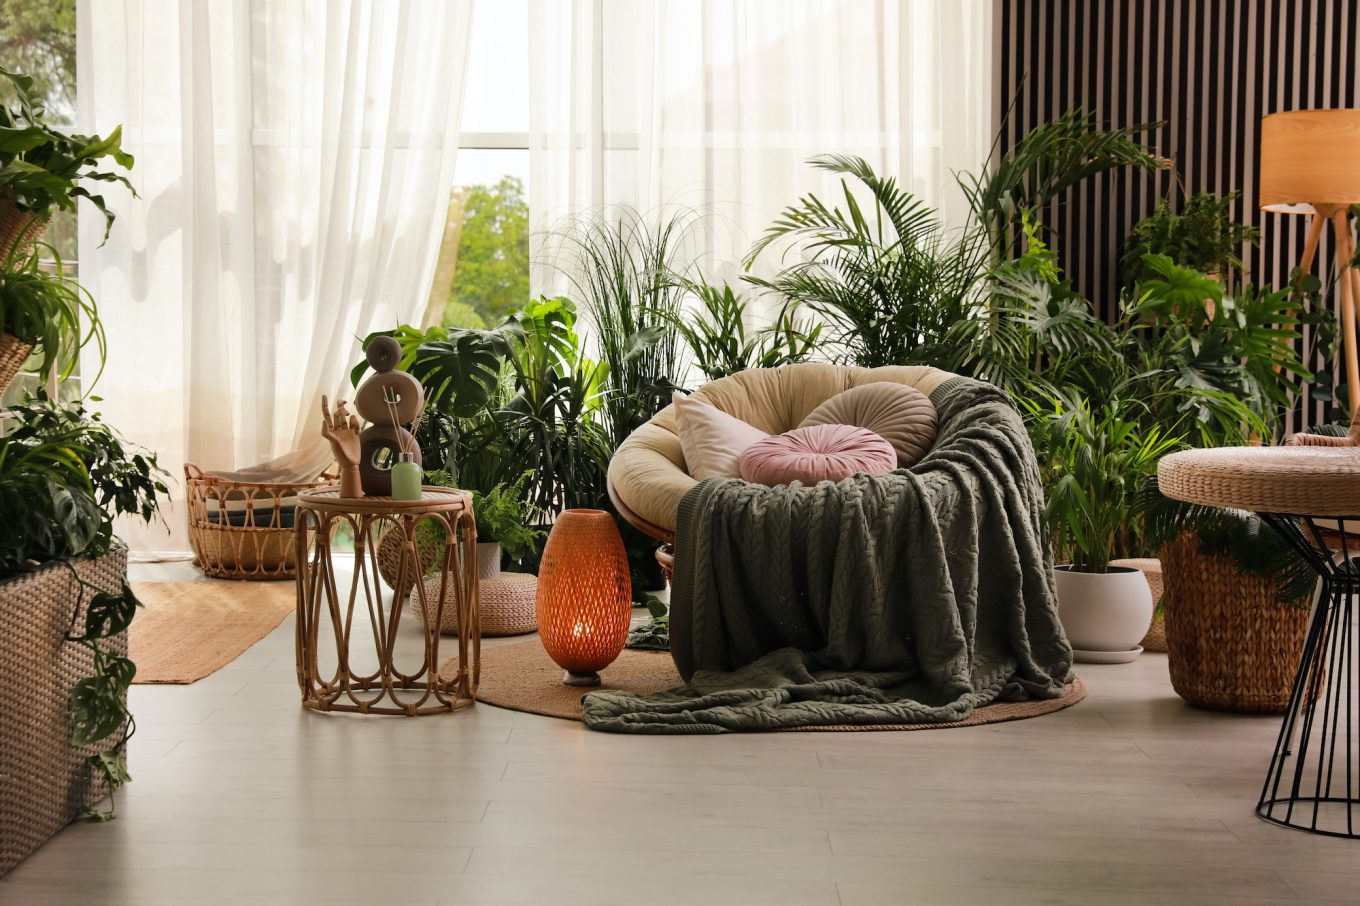 papasan chair with a blanket draped over it in a room with house plants